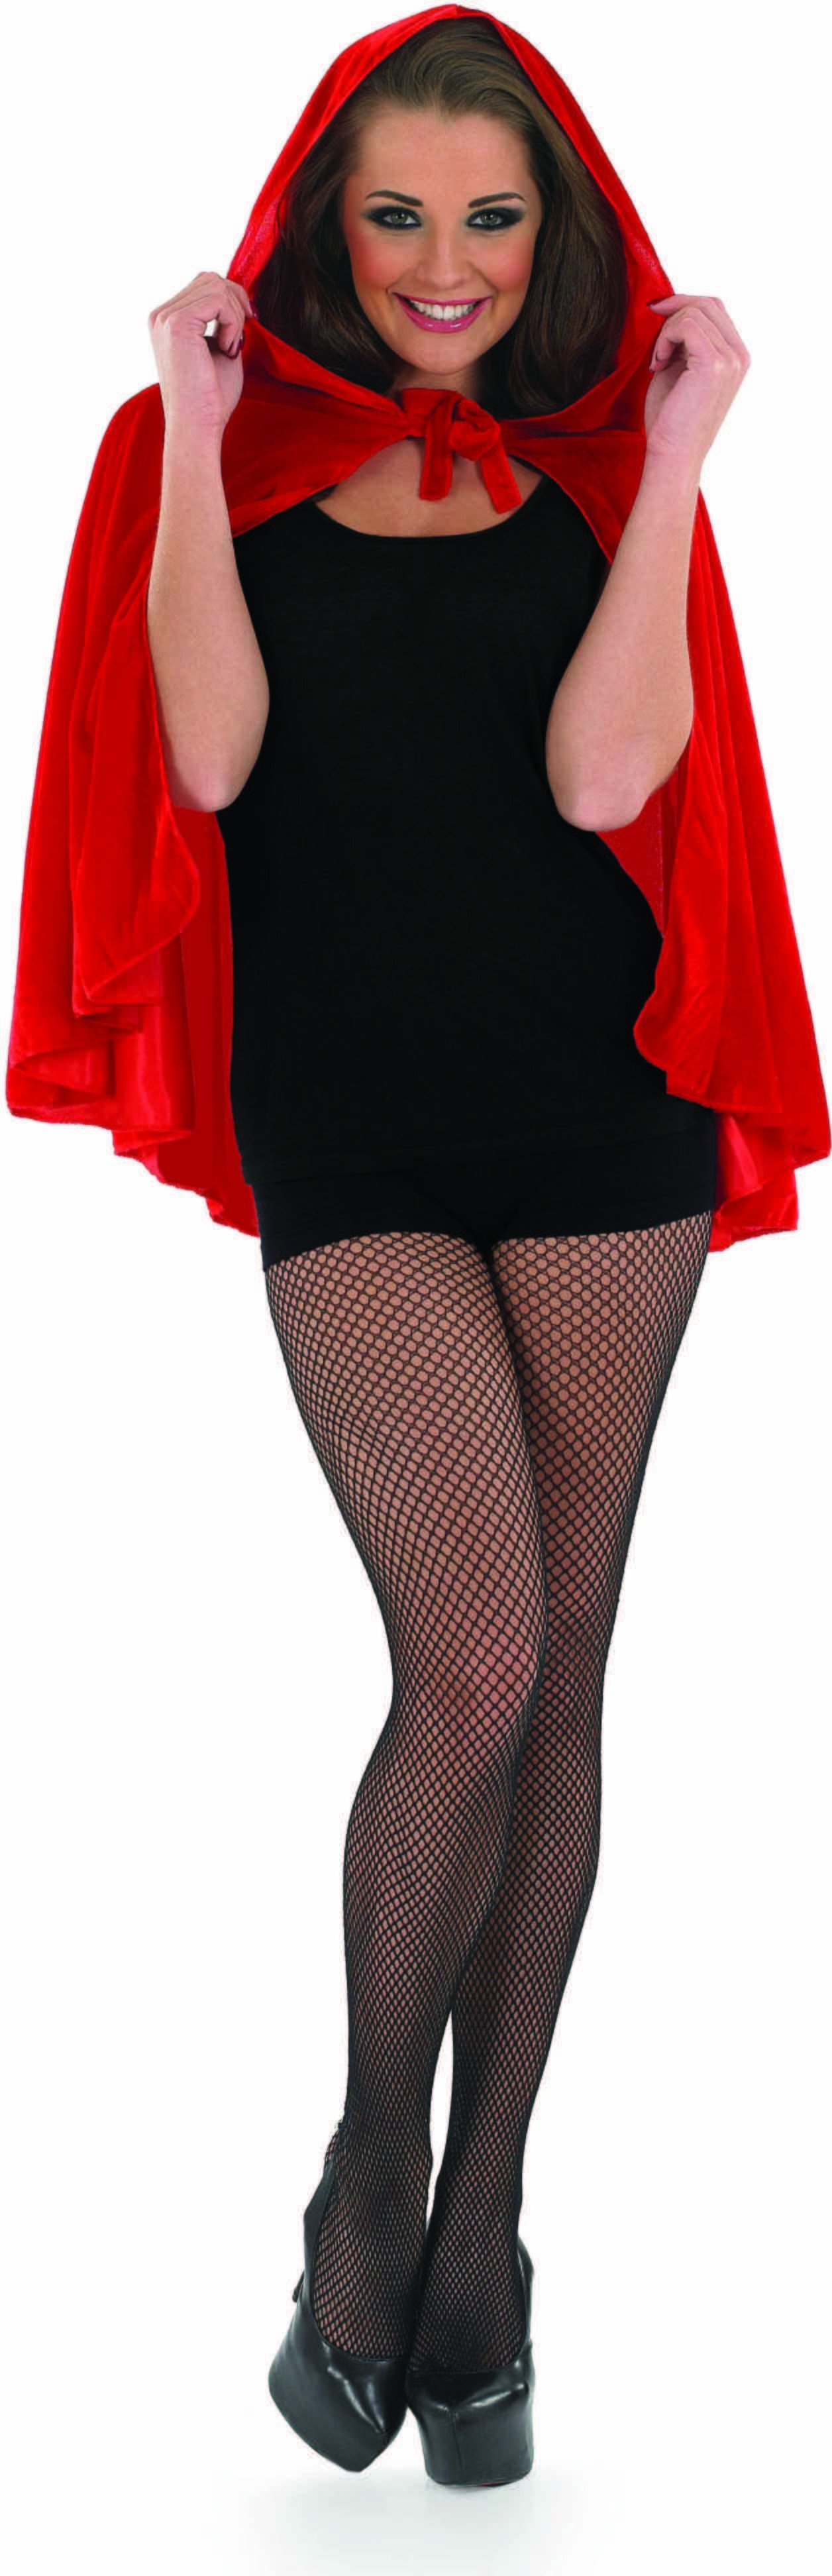 Adult Unisex Red Riding Hood Cape - (Red)